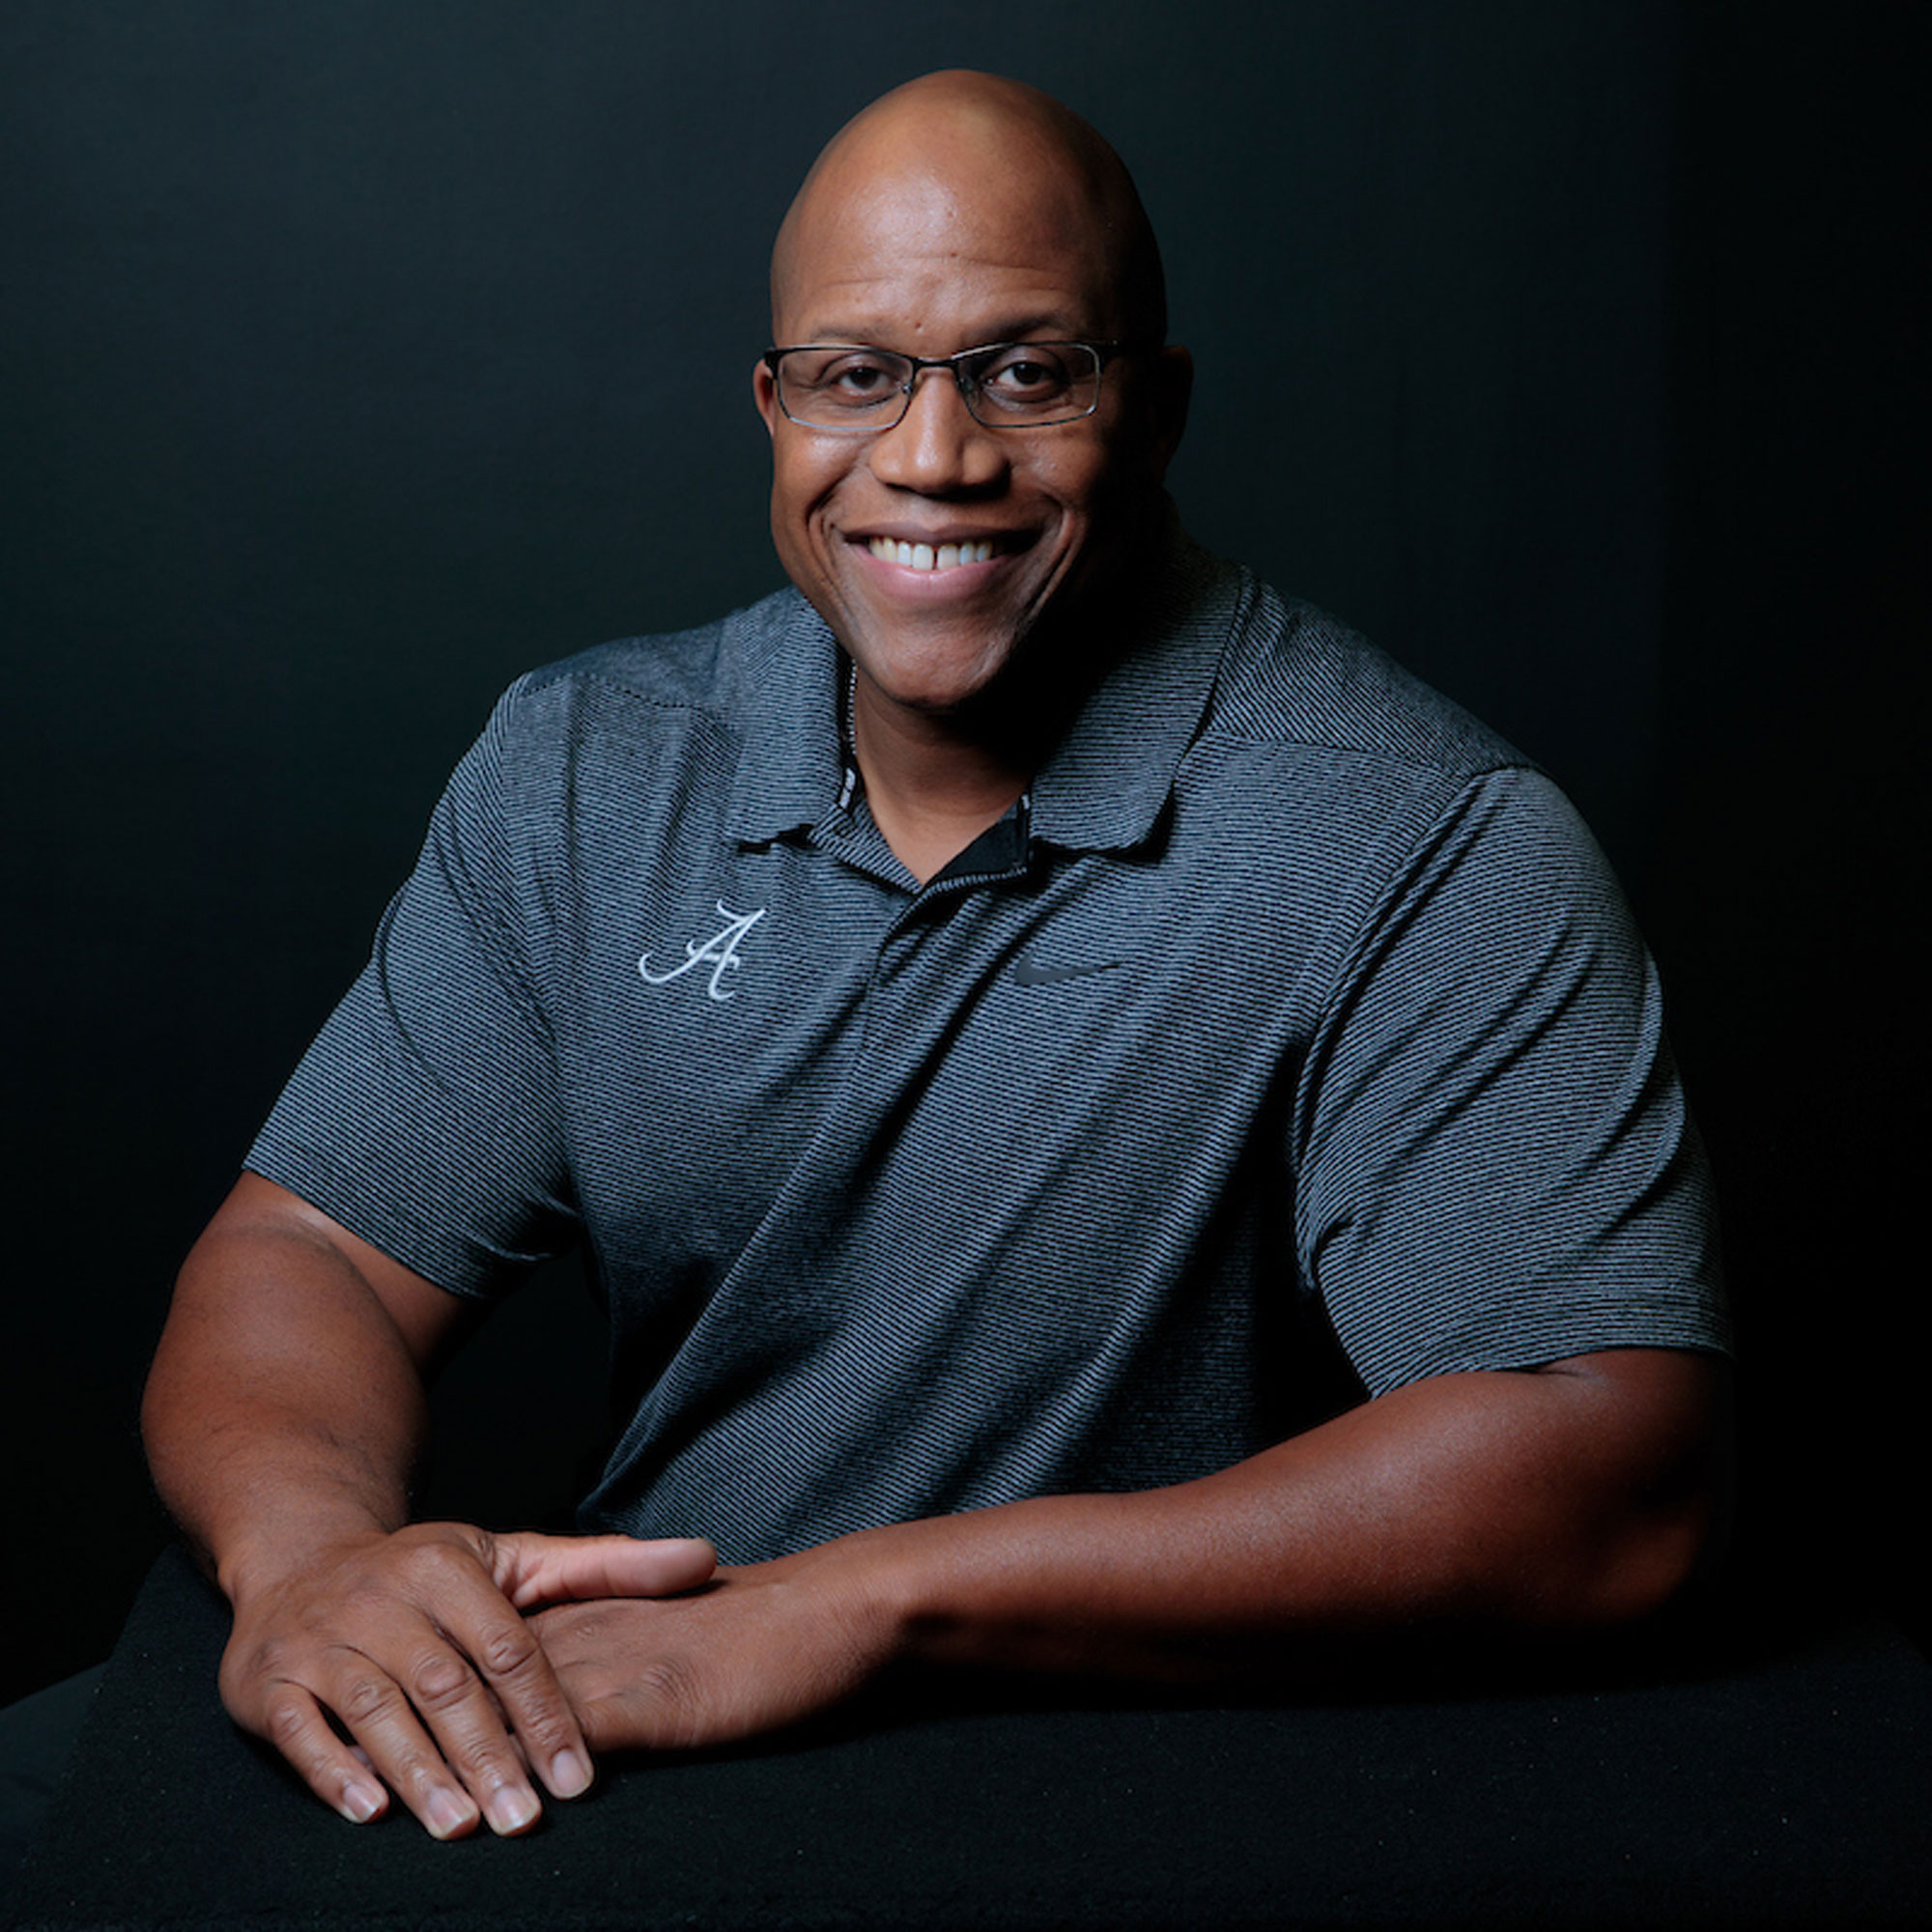 Theo Bruinton, assistant director of athletic facilities at The University of Alabama, poses for the Everyday Champions series.